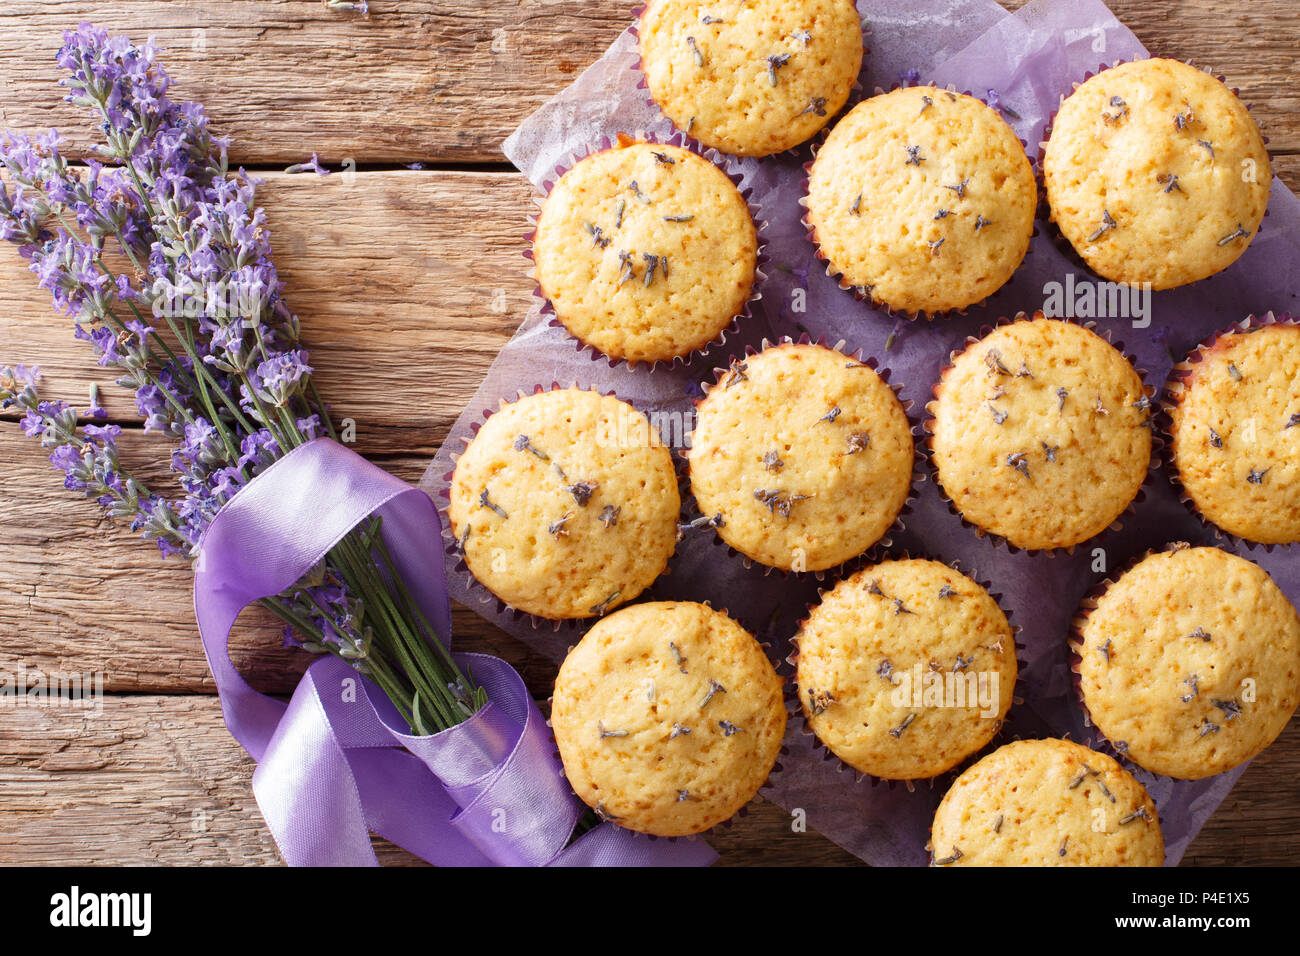 Beautiful food dessert: muffins with lavender flowers close-up on the table. Horizontal top view from above - Stock Image